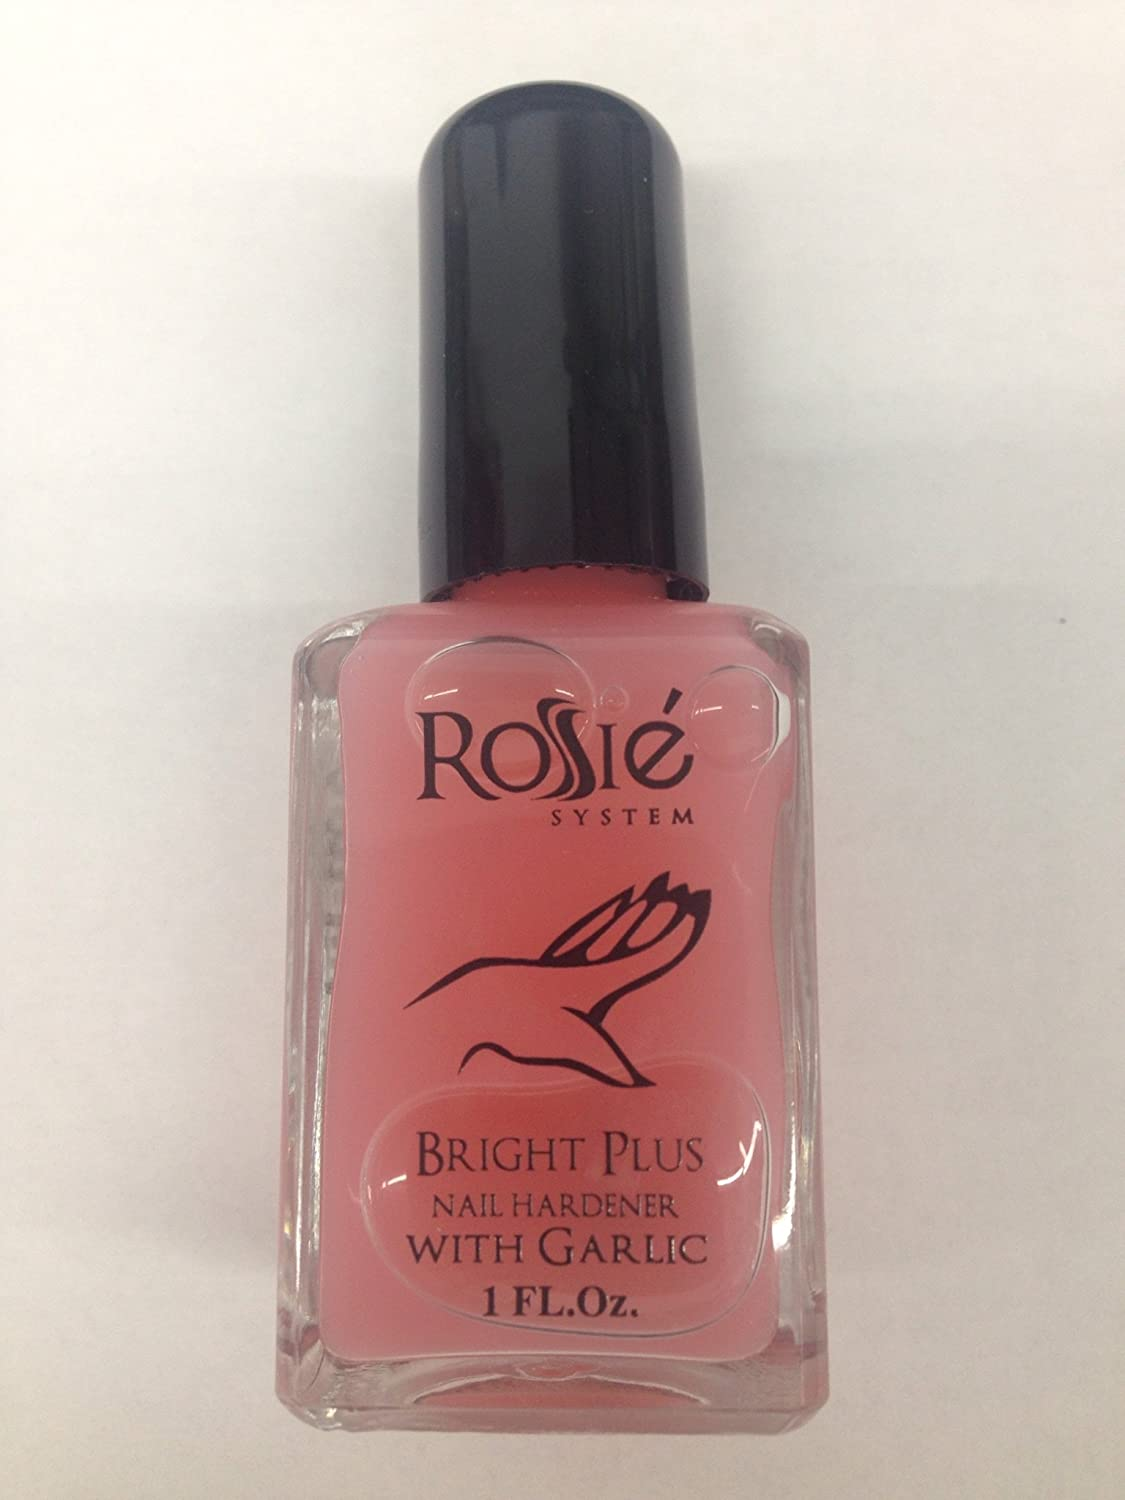 Amazon.com : Rossie System. Nail Hardener with Garlic : Nail ...